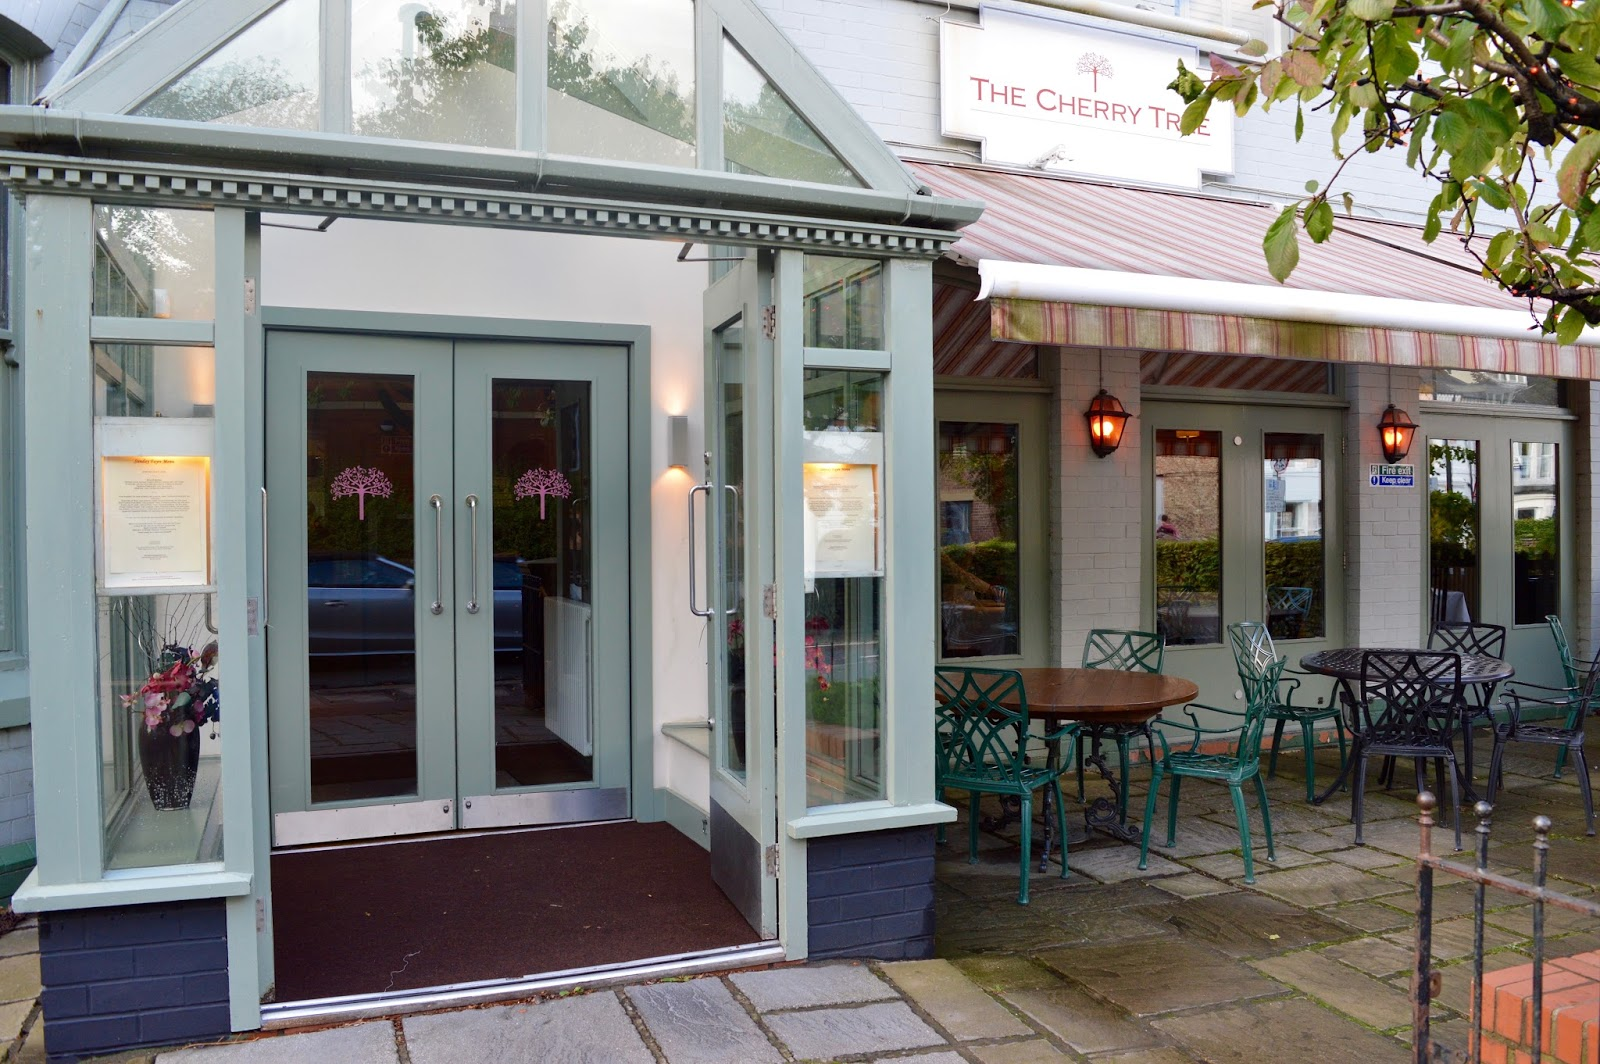 Family Sunday Lunch at The Cherry Tree Restaurant, Jesmond | A Review  - Osborne Road exterior